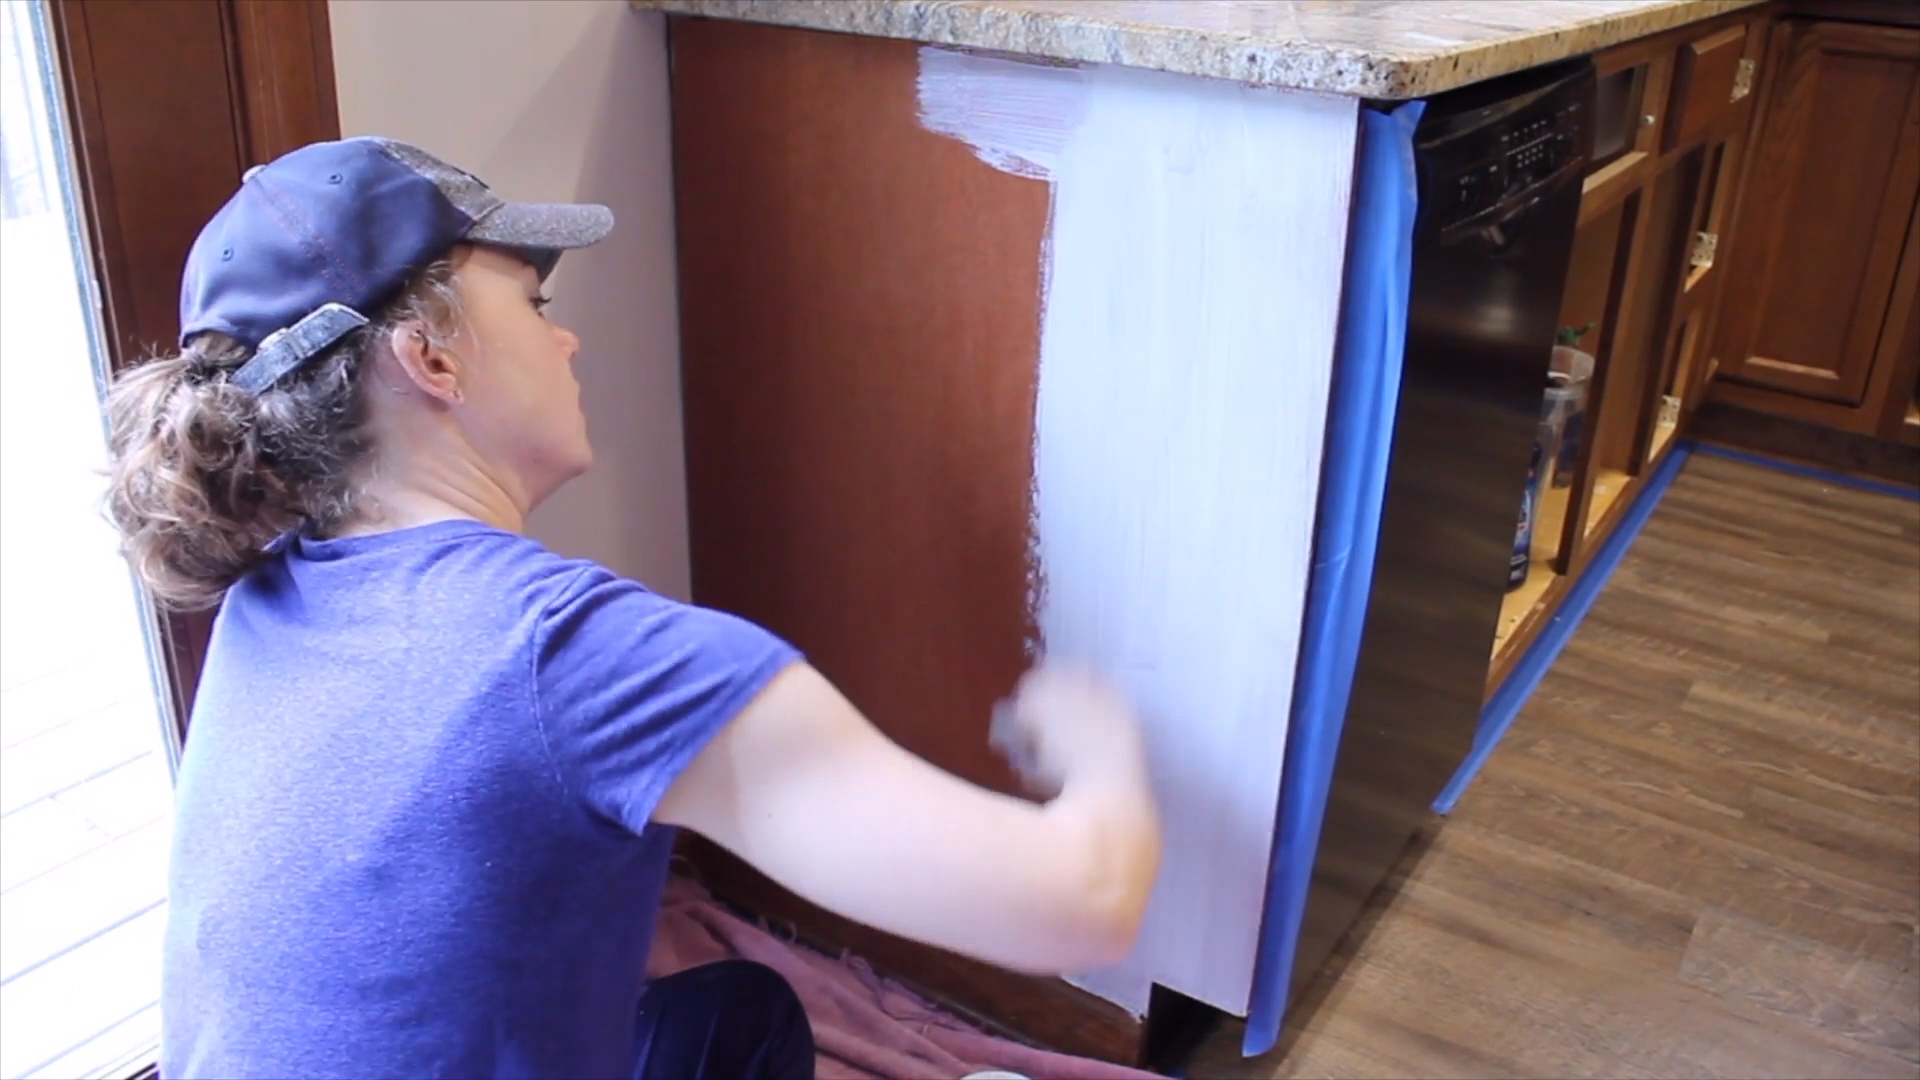 How to Paint Kitchen Cabinets - Painting kitchen cabinets, Painting kitchen cabinets white, Painting cabinets, Kitchen paint, Distressed kitchen cabinets, Kitchen cabinets - How to paint kitchen cabinets using General Finishes Milk Paint  Step by step tutorial and video shows you how to prep and paint for a durable finish!